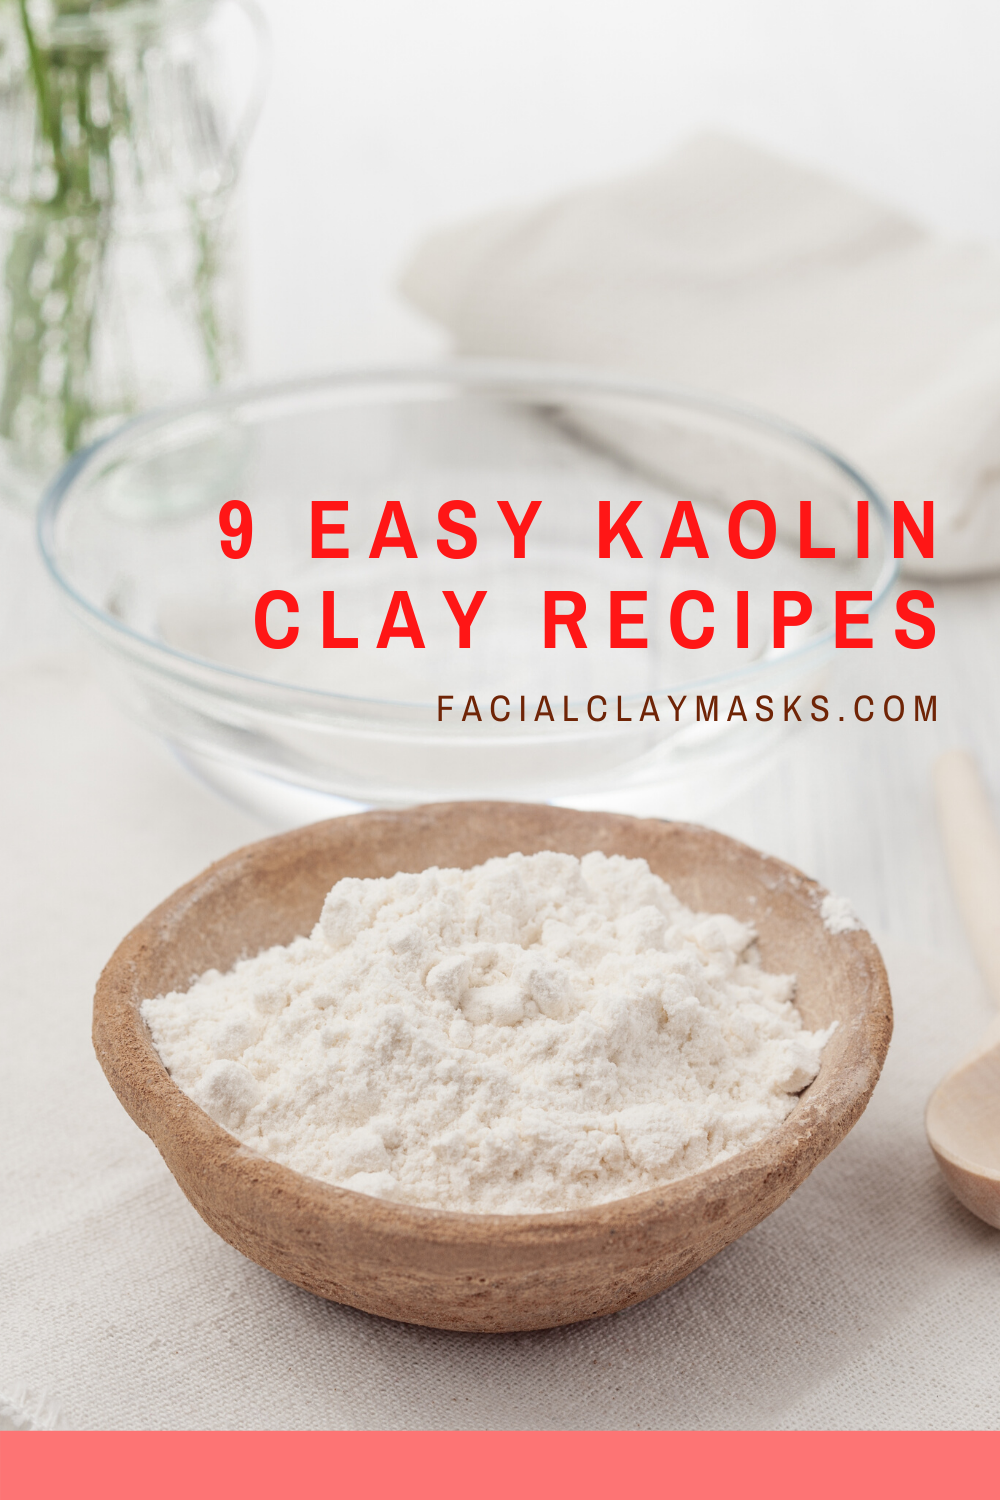 Best 8 Kaolin Clay Mask Recipes For All Skin Types Kaolin Clay Mask Recipe Clay Food Kaolin Clay